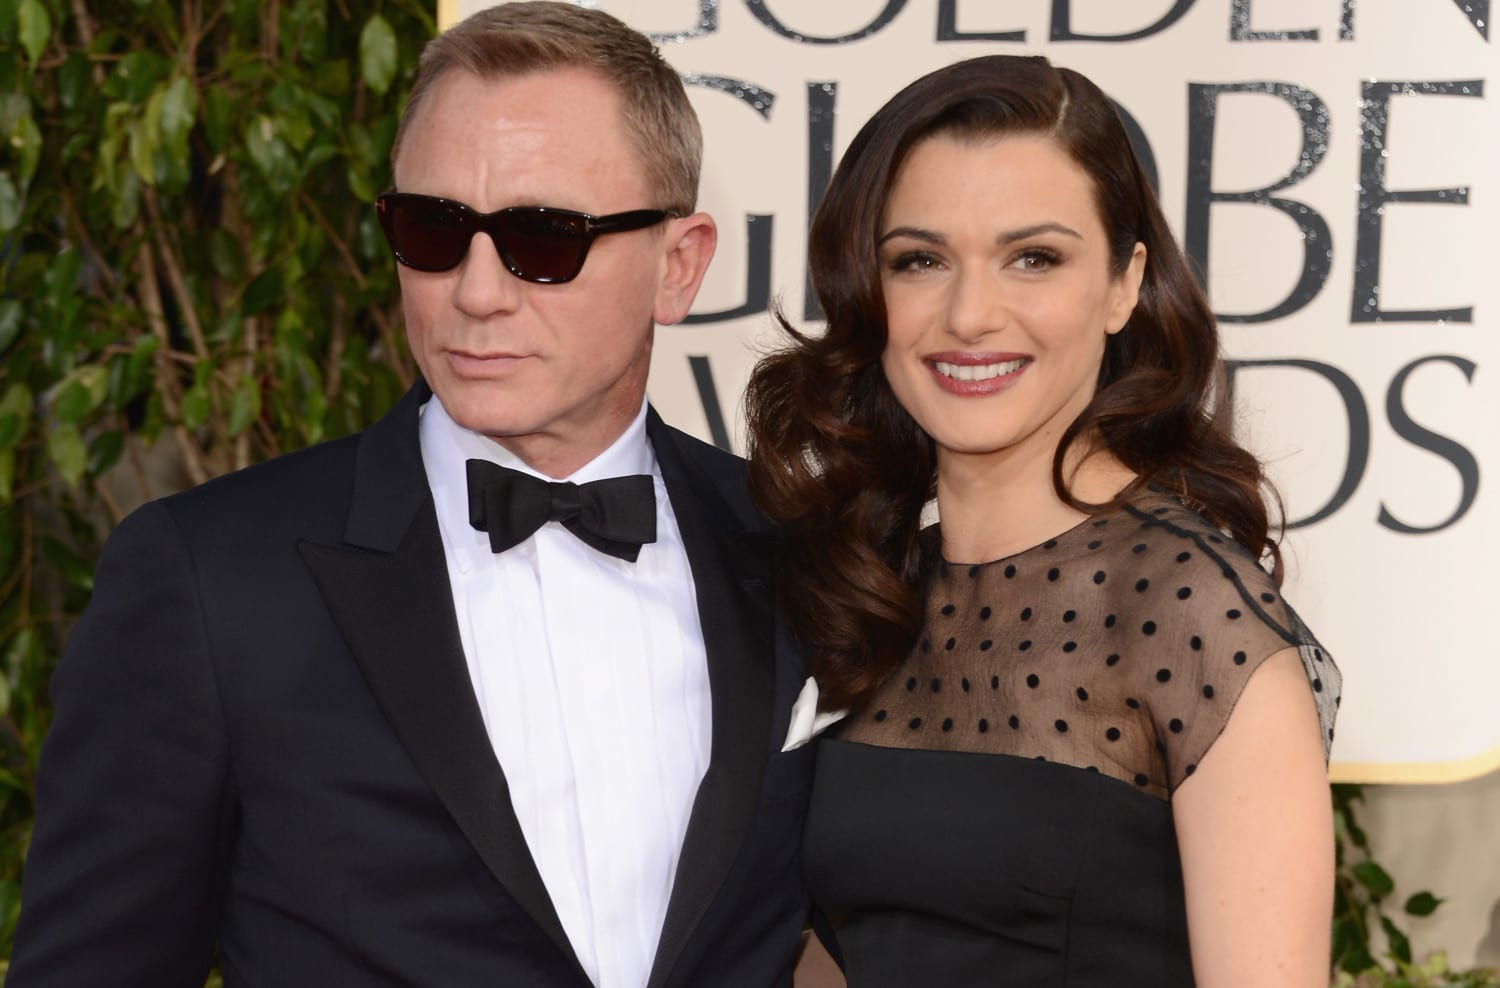 Rachel Weisz and Daniel Craig photo